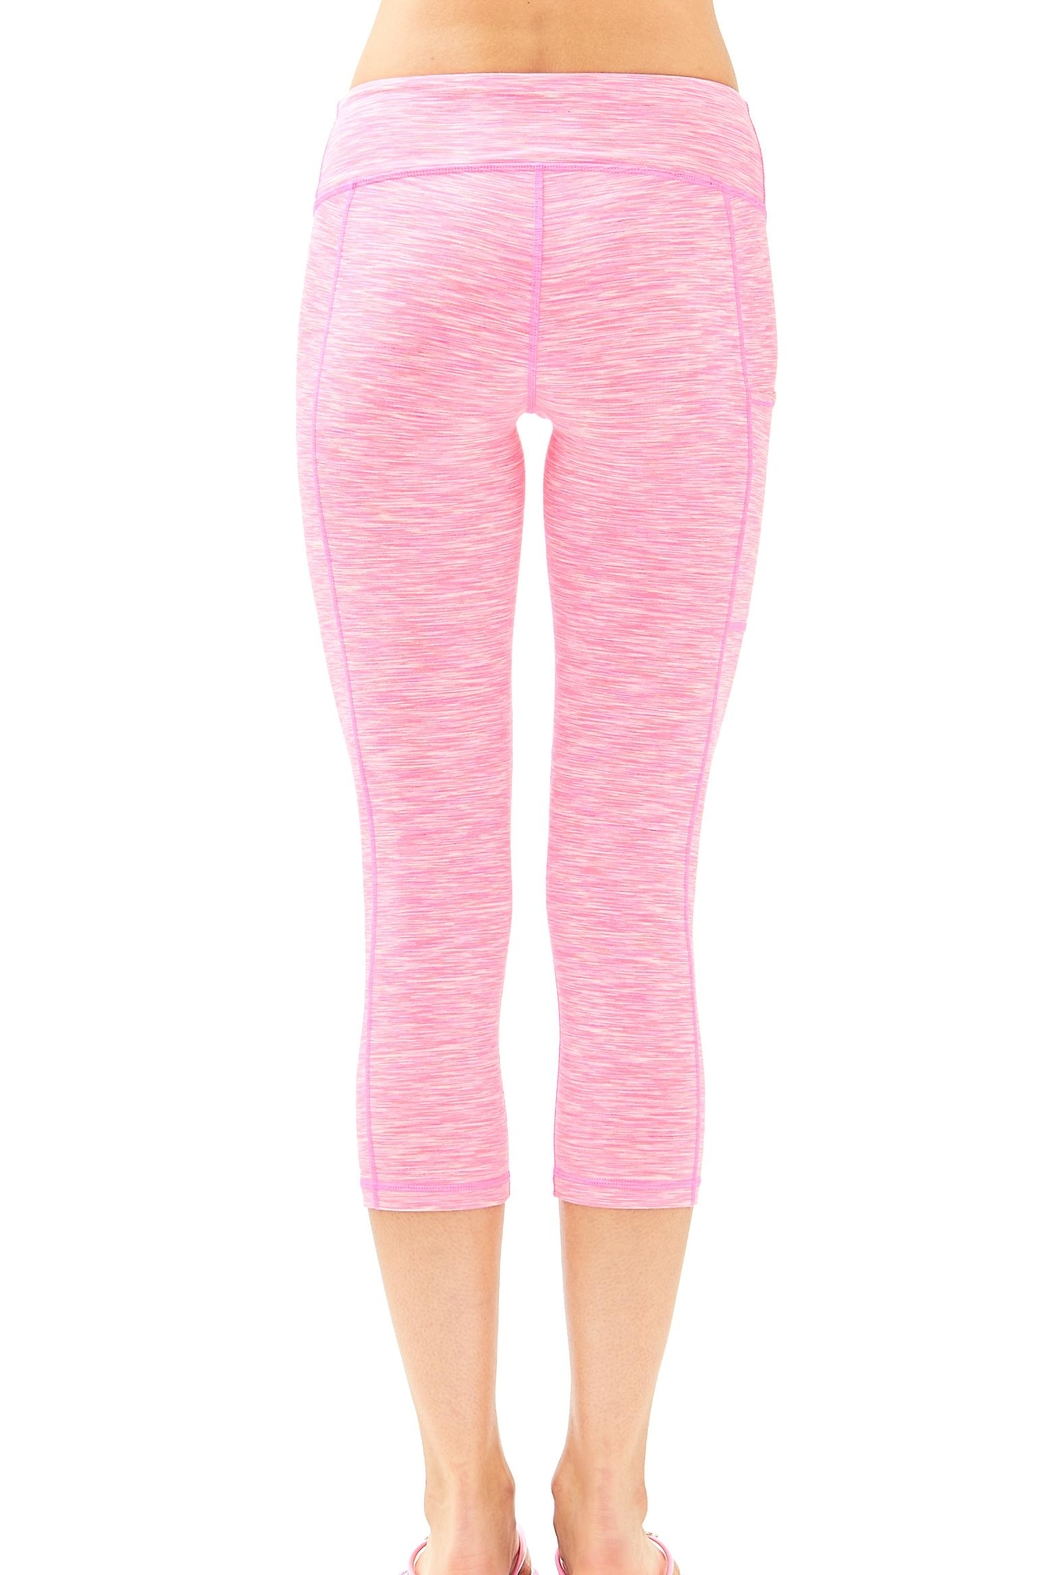 Lilly Pulitzer Weekender Crop Pant - Front Full Image